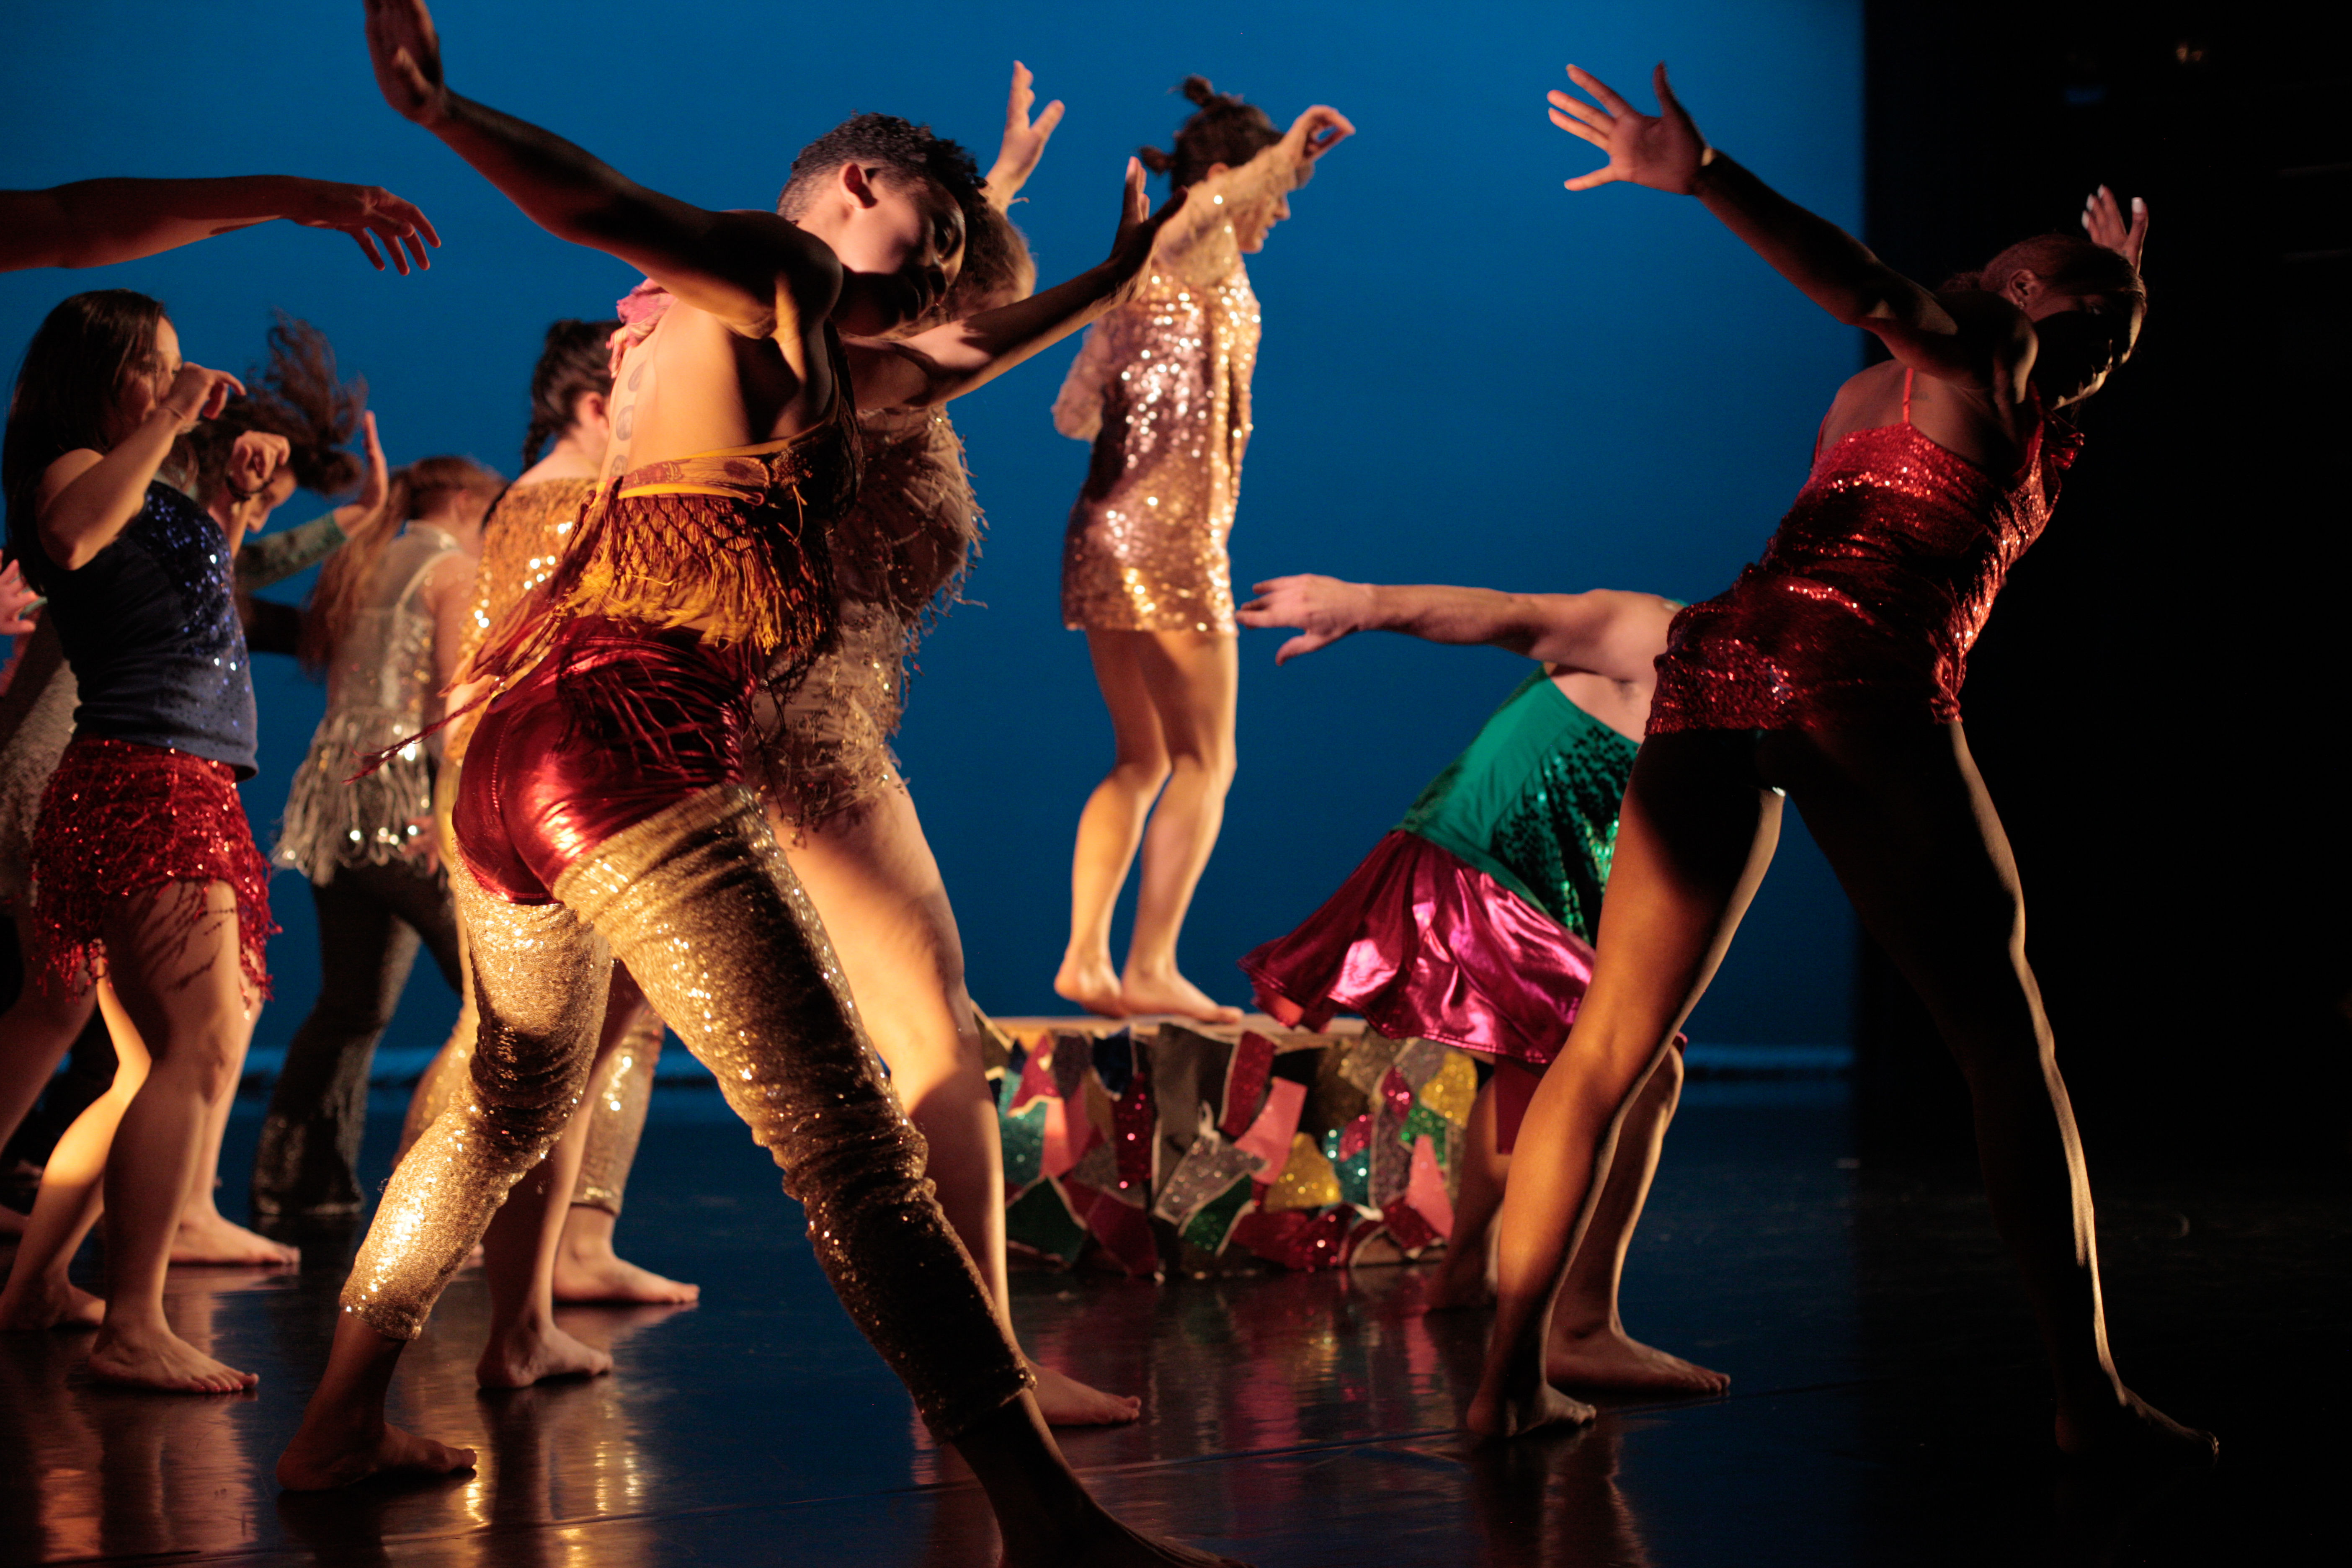 Temple dance students performing in costume on stage at the Conwell Dance Theater.